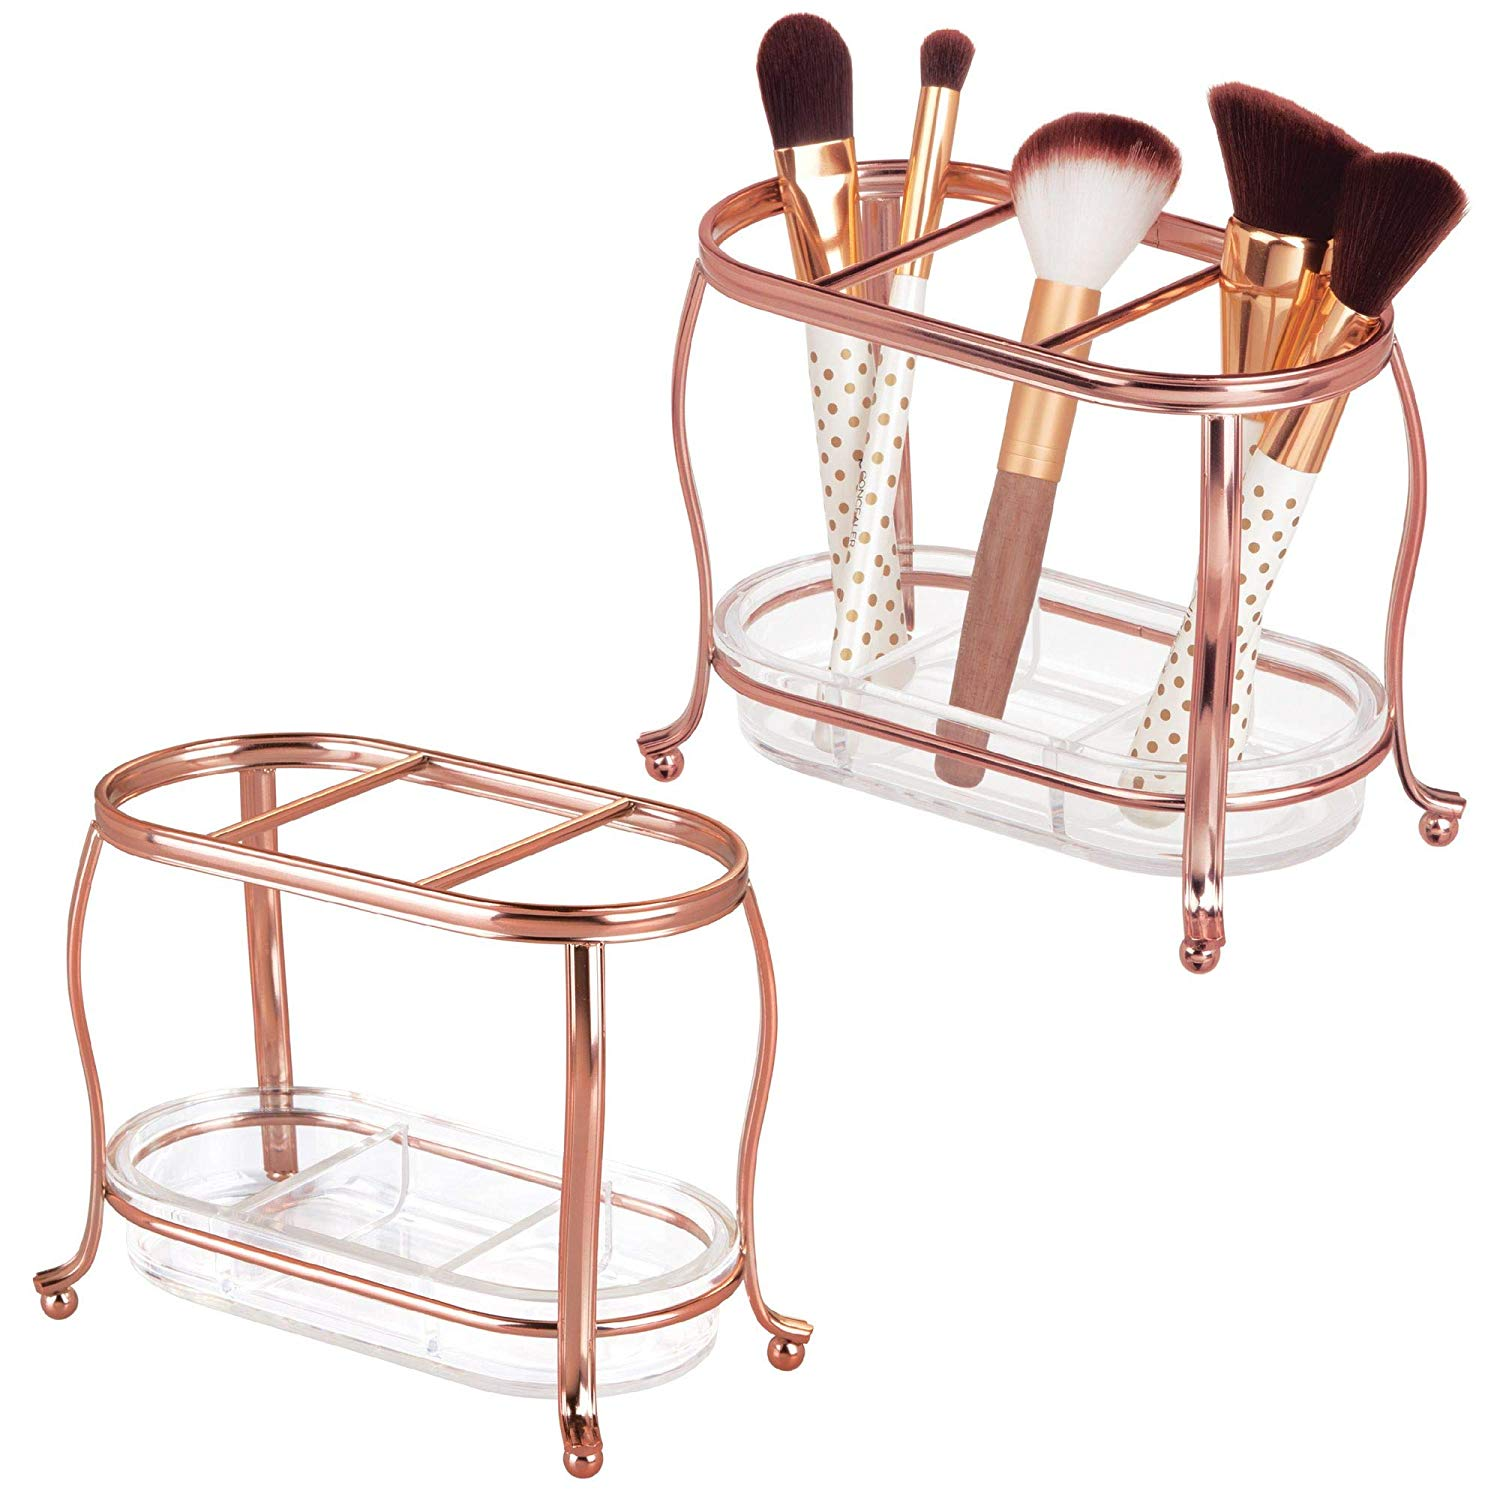 mDesign Decorative Makeup Brush Storage Organizer Tray Stand for Bathroom Vanity Counter Tops, Dressing Tables, Cosmetic Stations - 3 Sections with Removable Bottom Tray - Pack of 2, Rose Gold/Clear